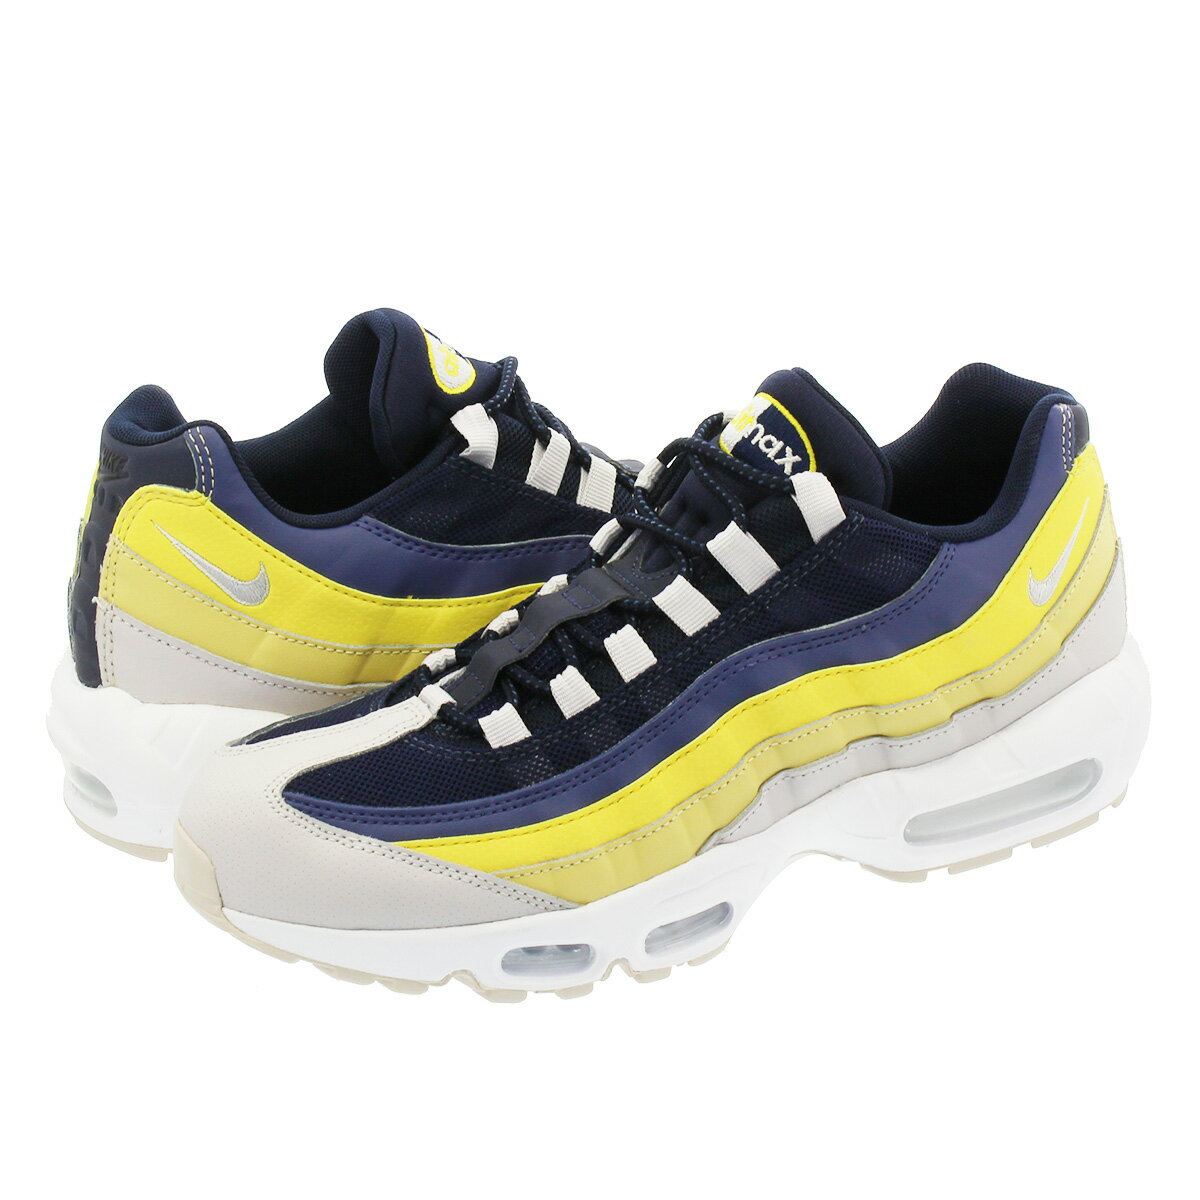 NIKE AIR MAX 95 ESSENTIAL ナイキ エア マックス 95 エッセンシャル WHITE/VAST GREY/LEMON WASH/TOUR YELLOW 749766-107